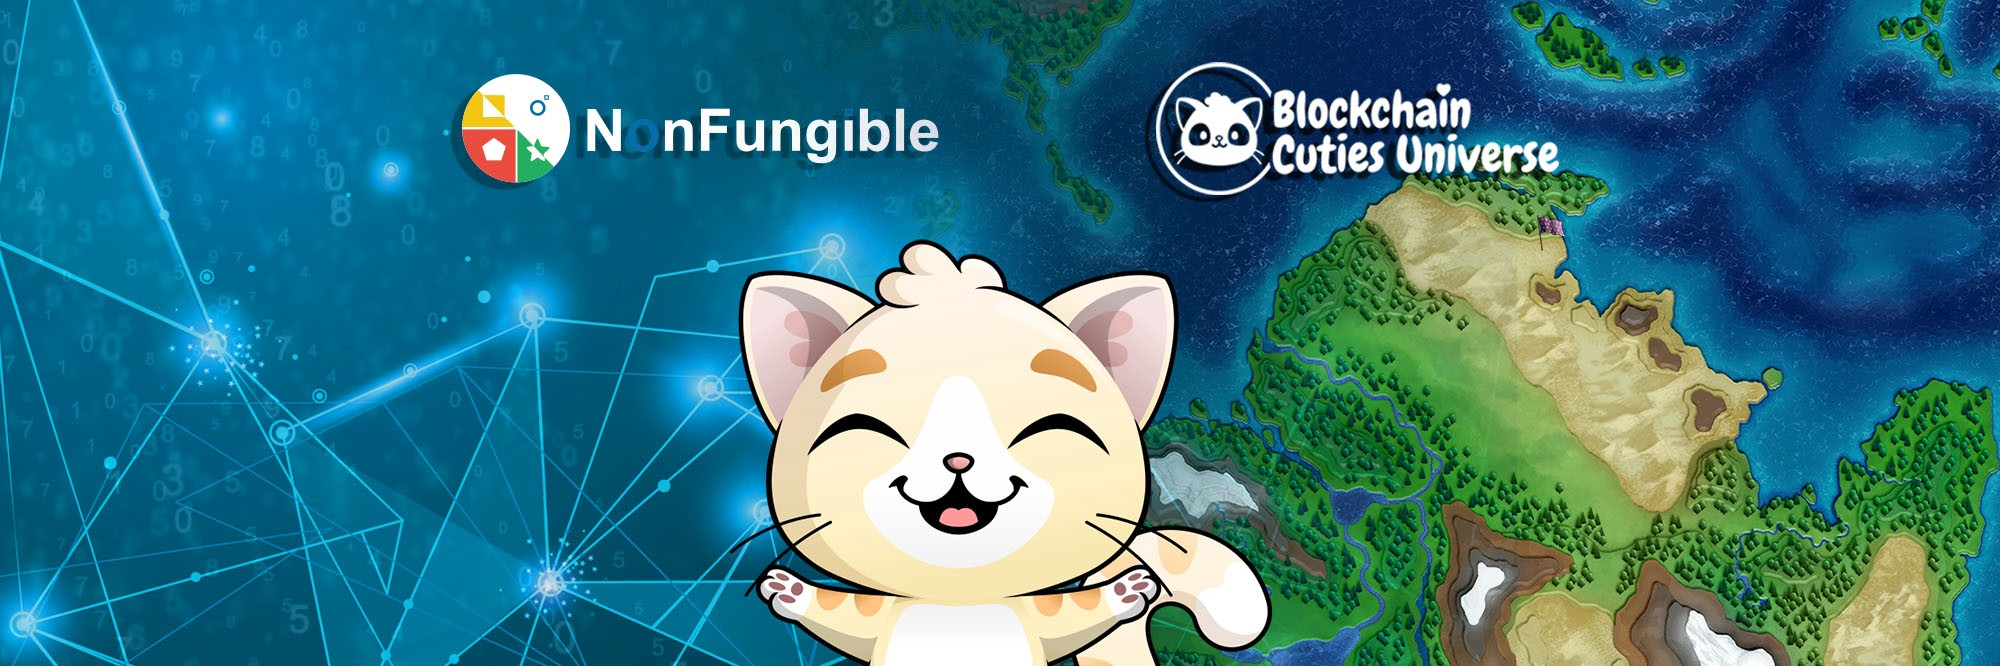 Blockchain Cuties and NonFungible GIVEAWAY